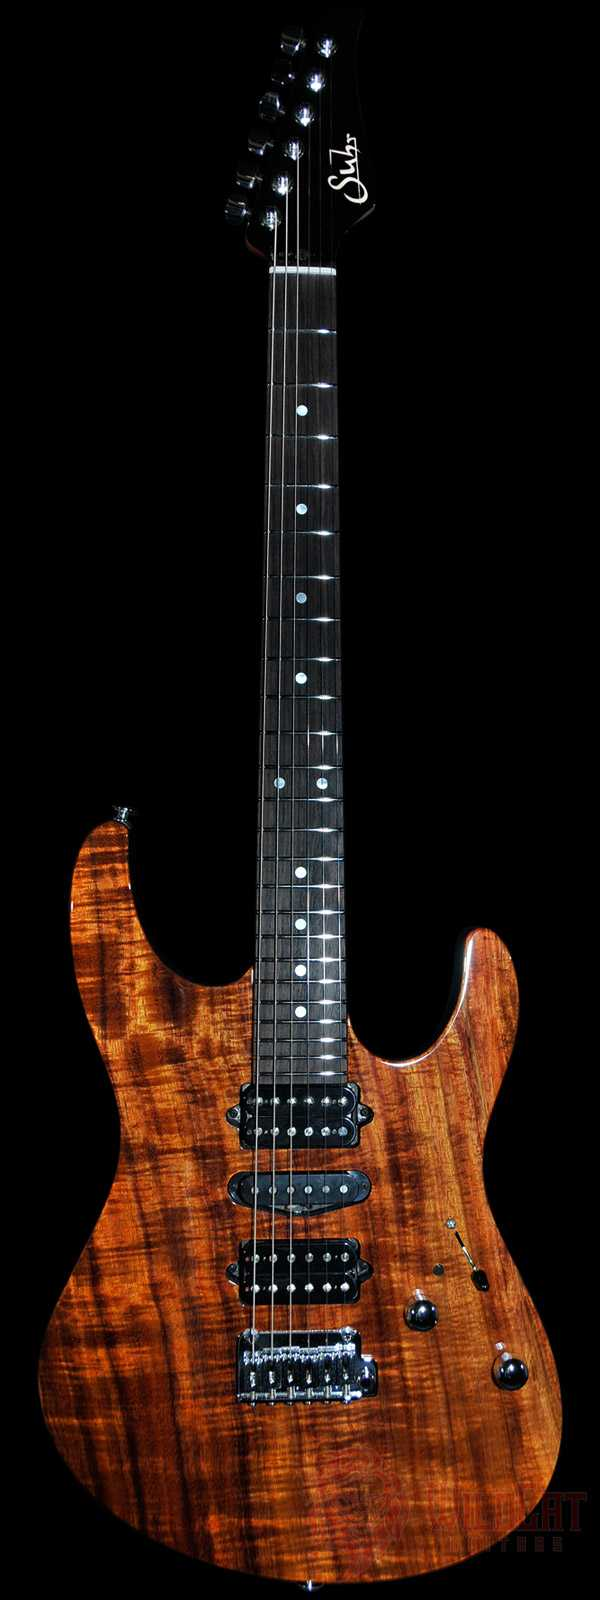 Suhr Modern Koa 1-Piece Top Roasted Maple Neck